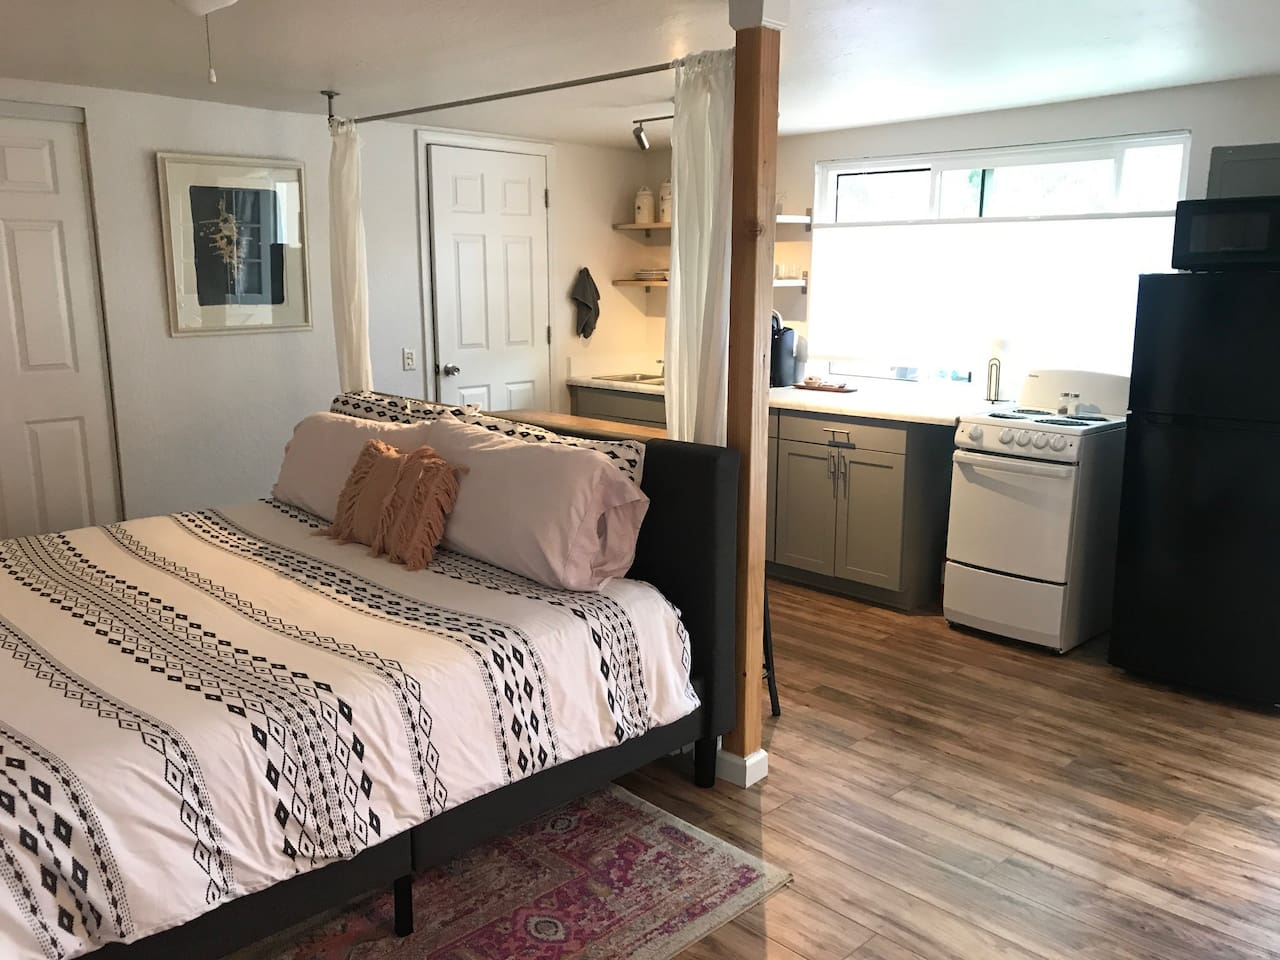 The Studio is approx. 350 sq ft with small bathroom, closet, kitchen with stove/oven combo, fridge, microwave, and Keurig. Countertop dining table with seating for four.